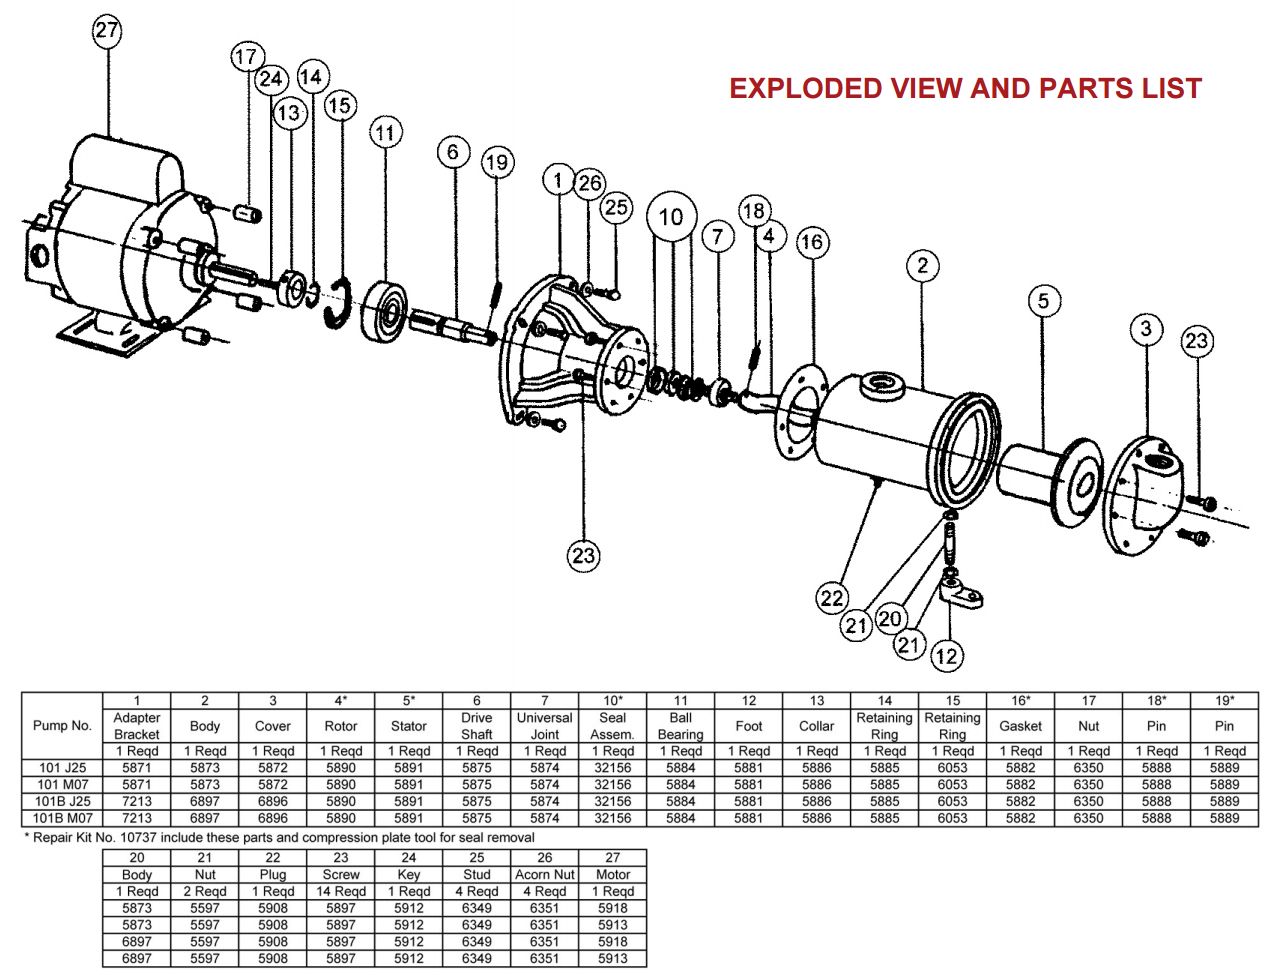 Turbine Stator Blade Cooling And Aircraft Engines besides Types Of Usb Connectors additionally Topic 2976929 0 moreover Warn Contactor Wiring Diagrams likewise Ac Motor Parts. on single phase motor exploded view